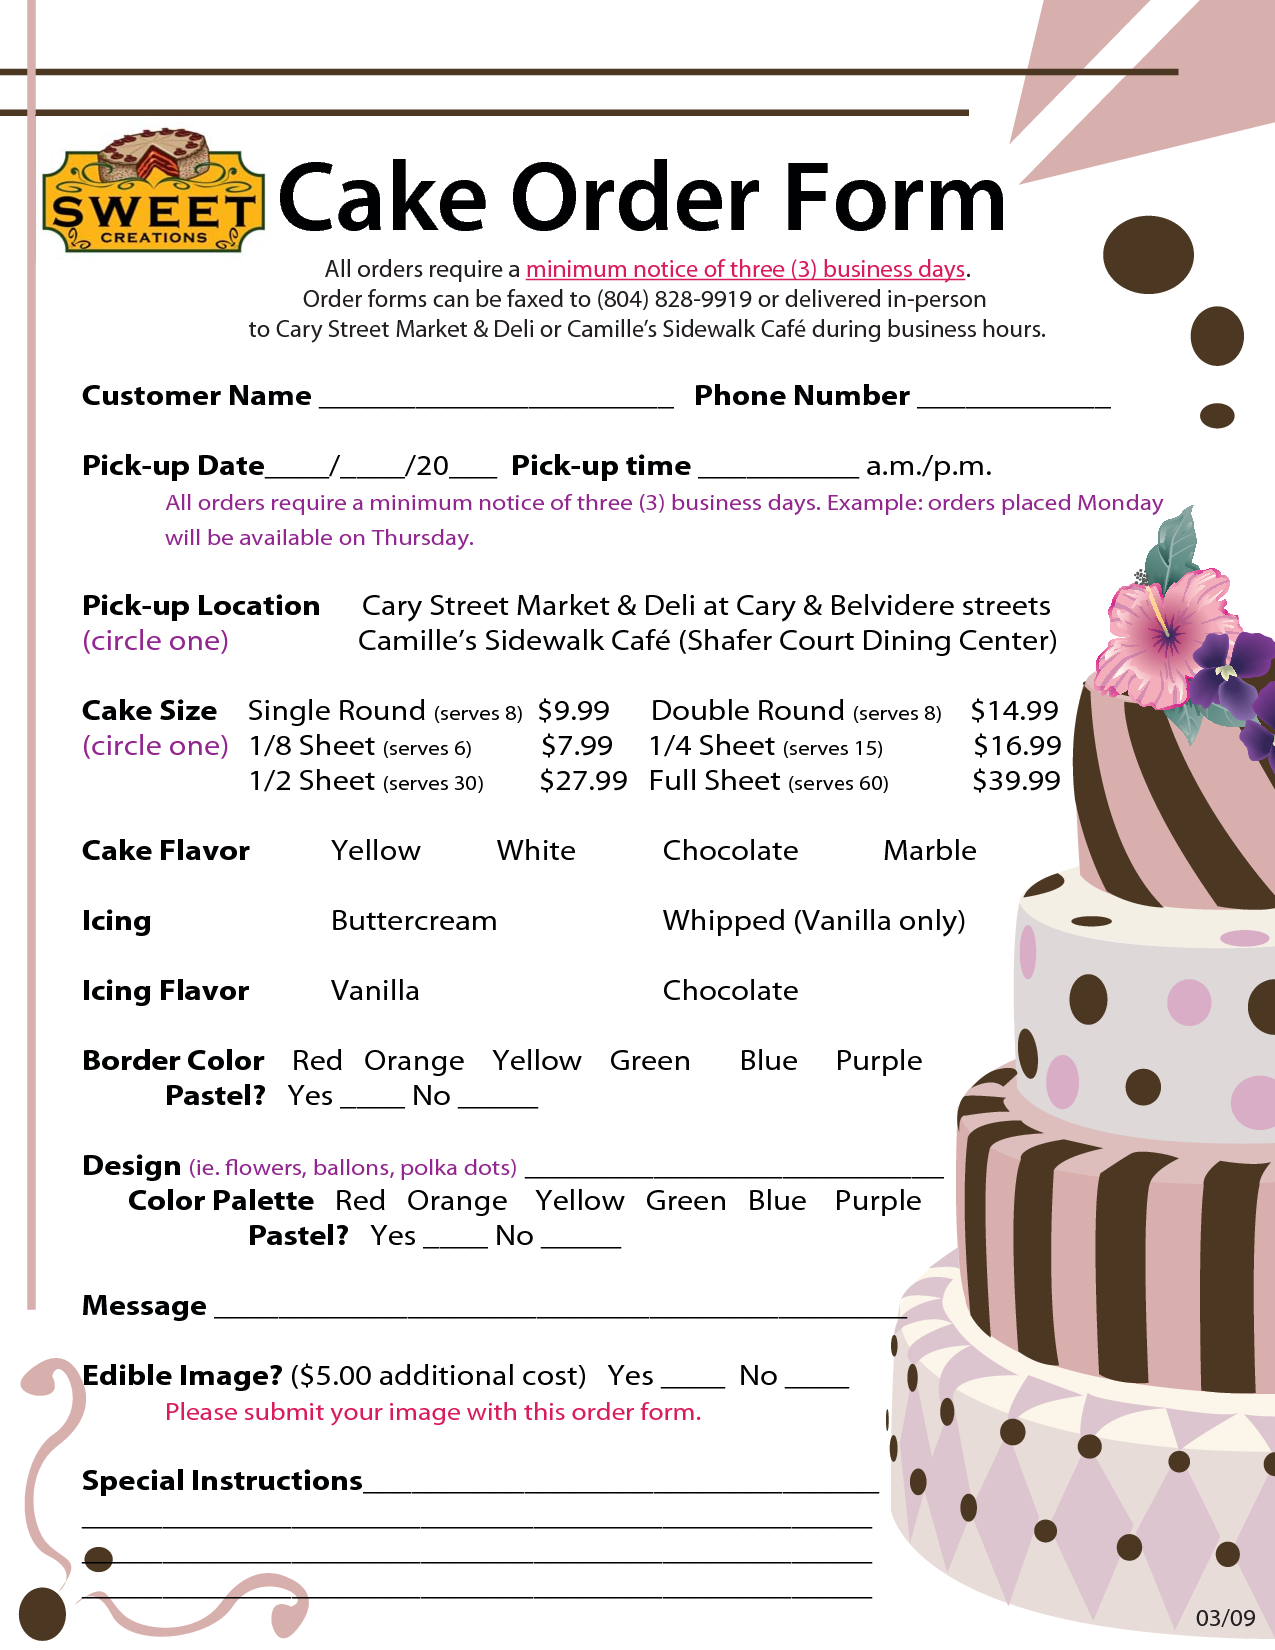 pin order forms cake cake on pinterest